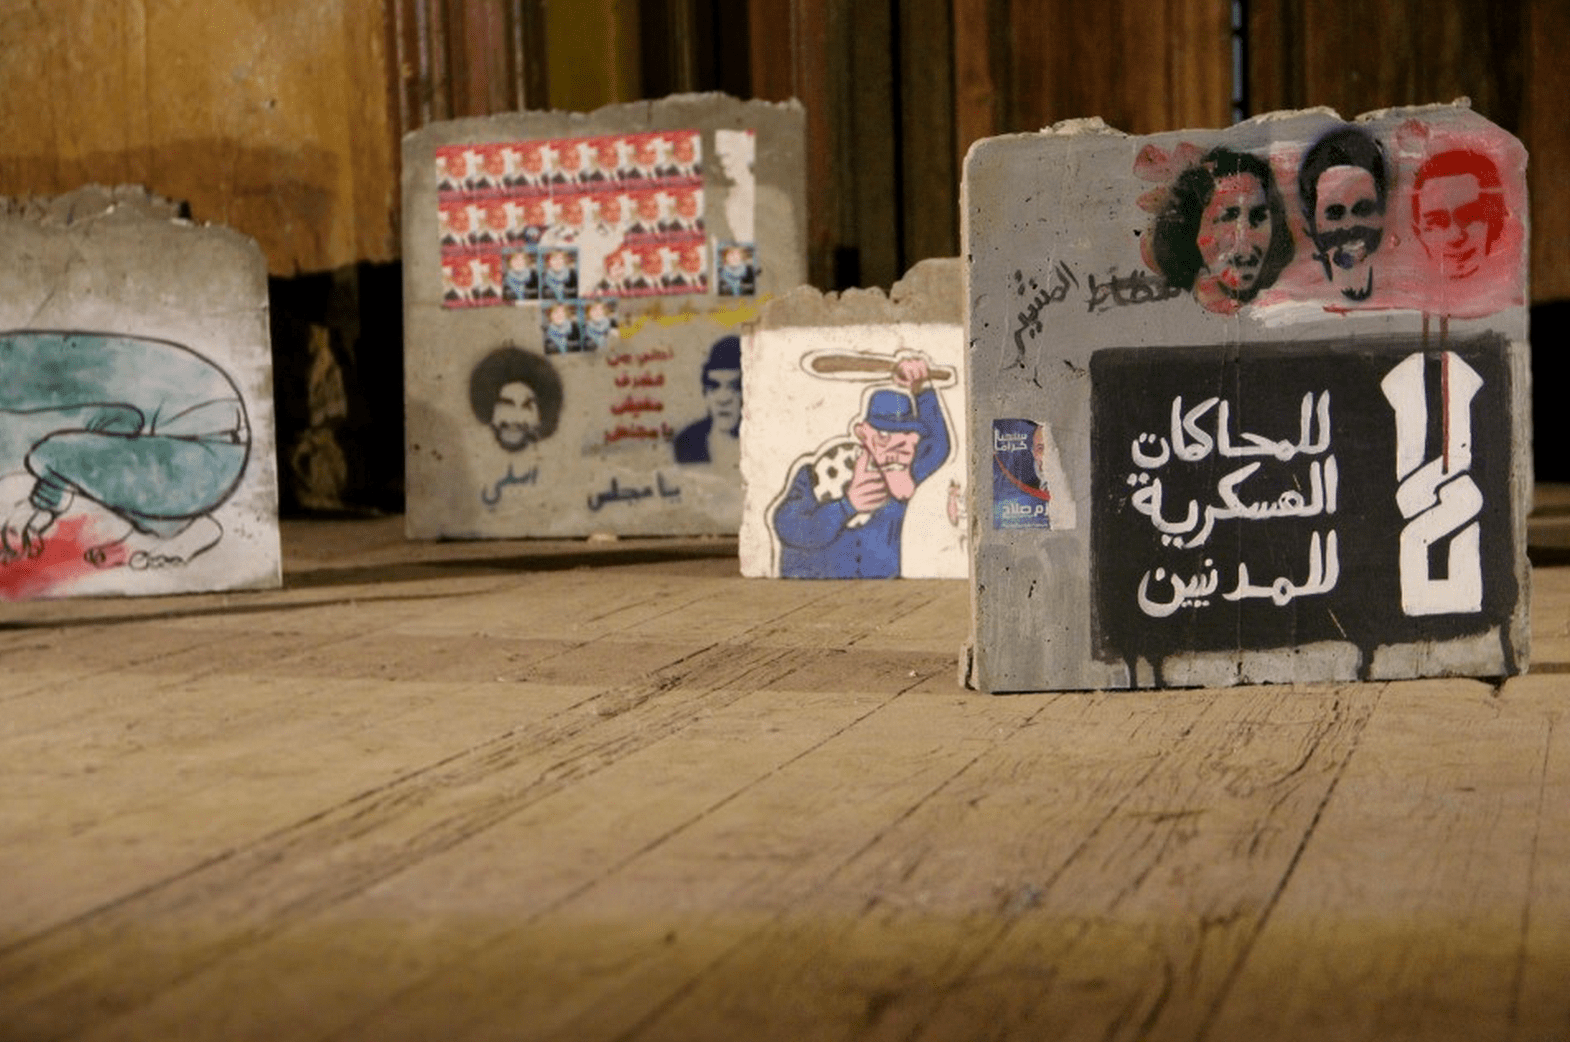 Photo by Rowan El Shimi (Flickr) of the Horreya Exhibition, 2012. Born from a conversation between visual artists Ganzeer and Hany Rashed in 2012, the exhibition also features graffiti and installation works by Ammar Abu Bakr and Ahmed Hefnawy.